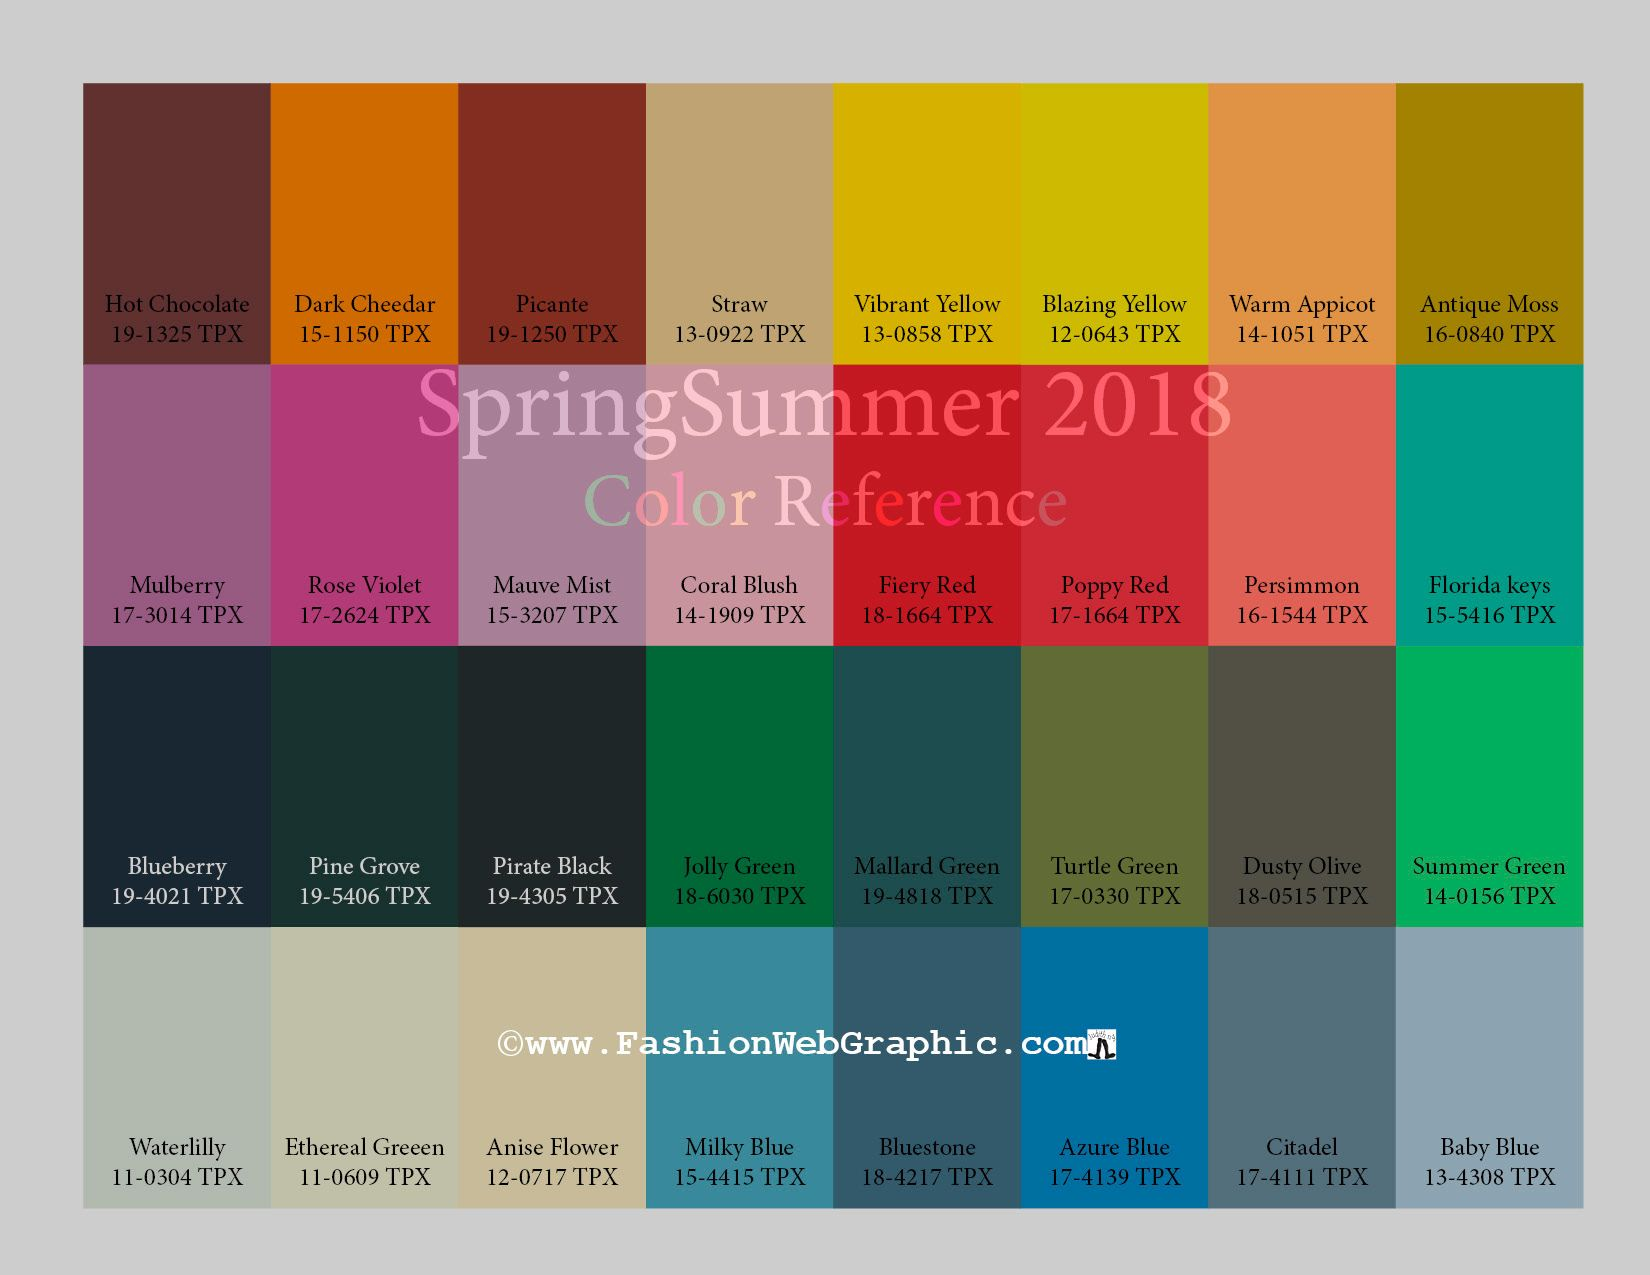 spring summer 2018 trend forecasting is a trend/color guide that